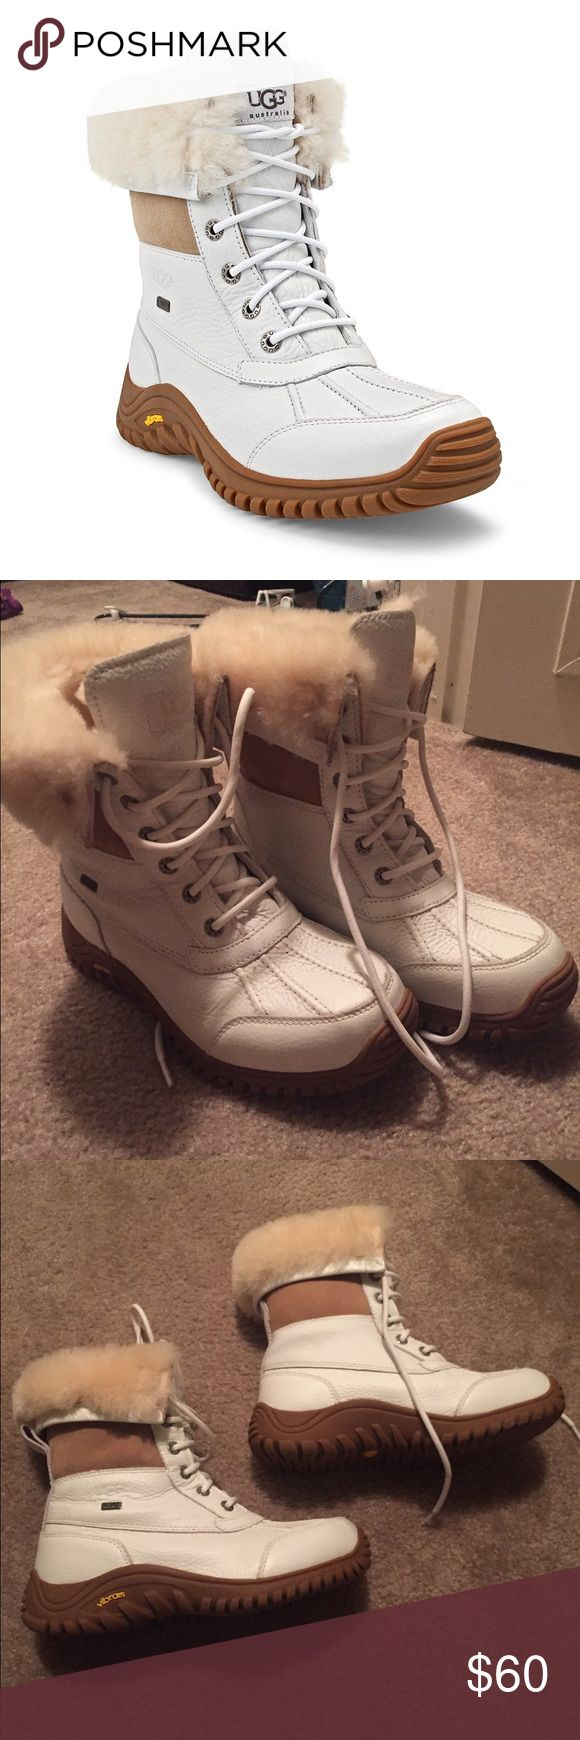 UGG White Adirondack Snow Bunny Boot Size 7.5 non smoking home, authentic UGG snow boots! Practically new only worn like twice. One boot is missing an insert from moving but you can get one from the ugg store😊 they are super warm and fluffy! UGG Shoes Winter & Rain Boots